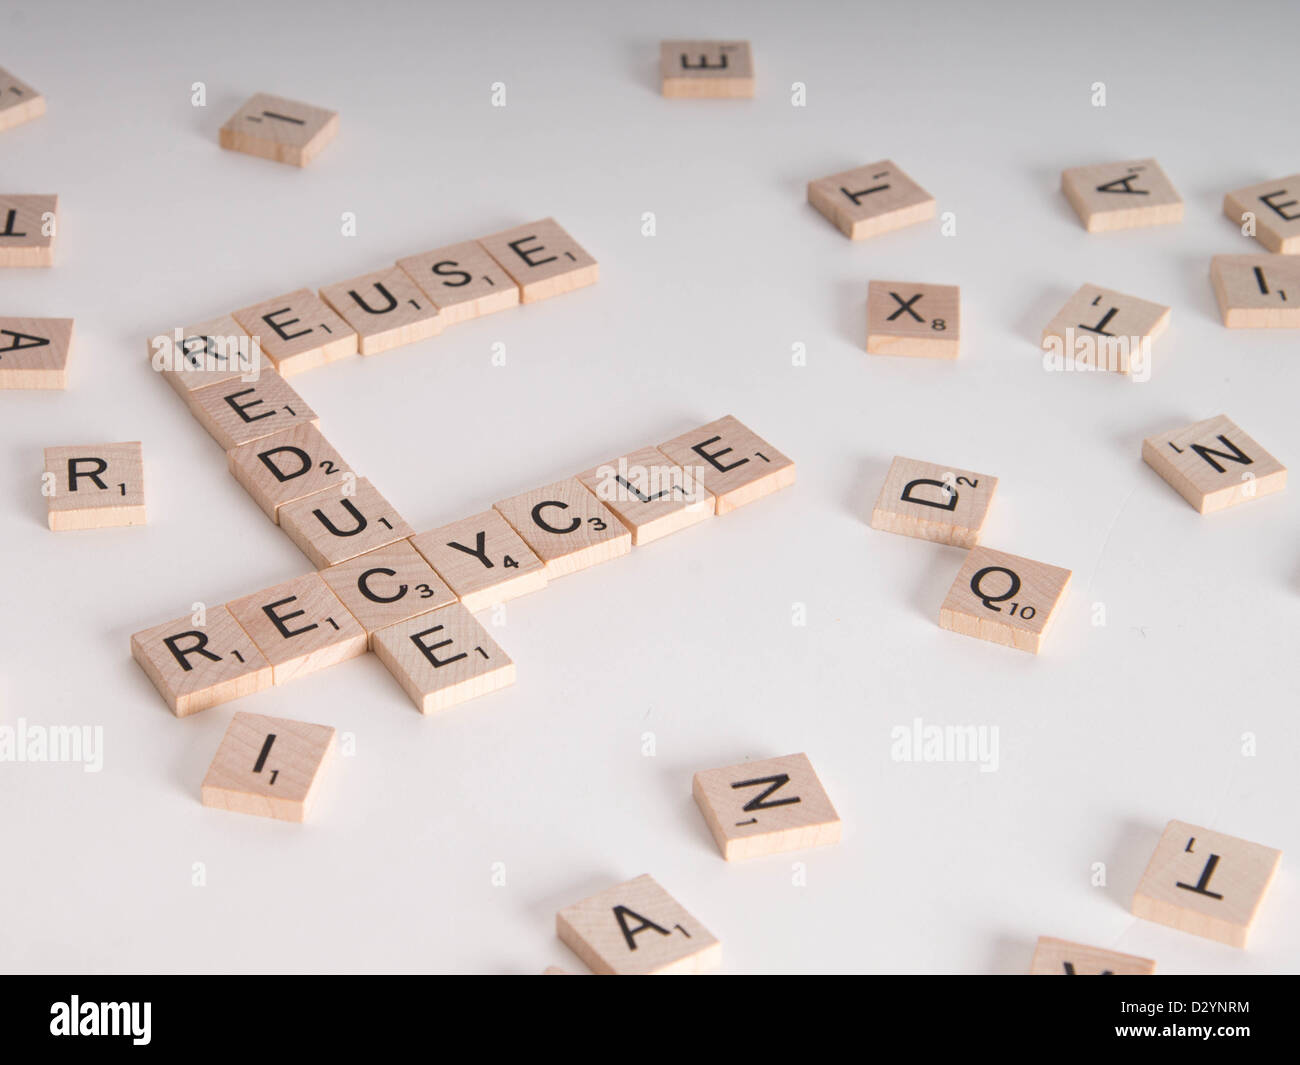 Reduce, Reuse, Recycle concept. Wooden Scrabble letters spell out 'reduce, reuse, recycle' Isolated on white - Stock Image